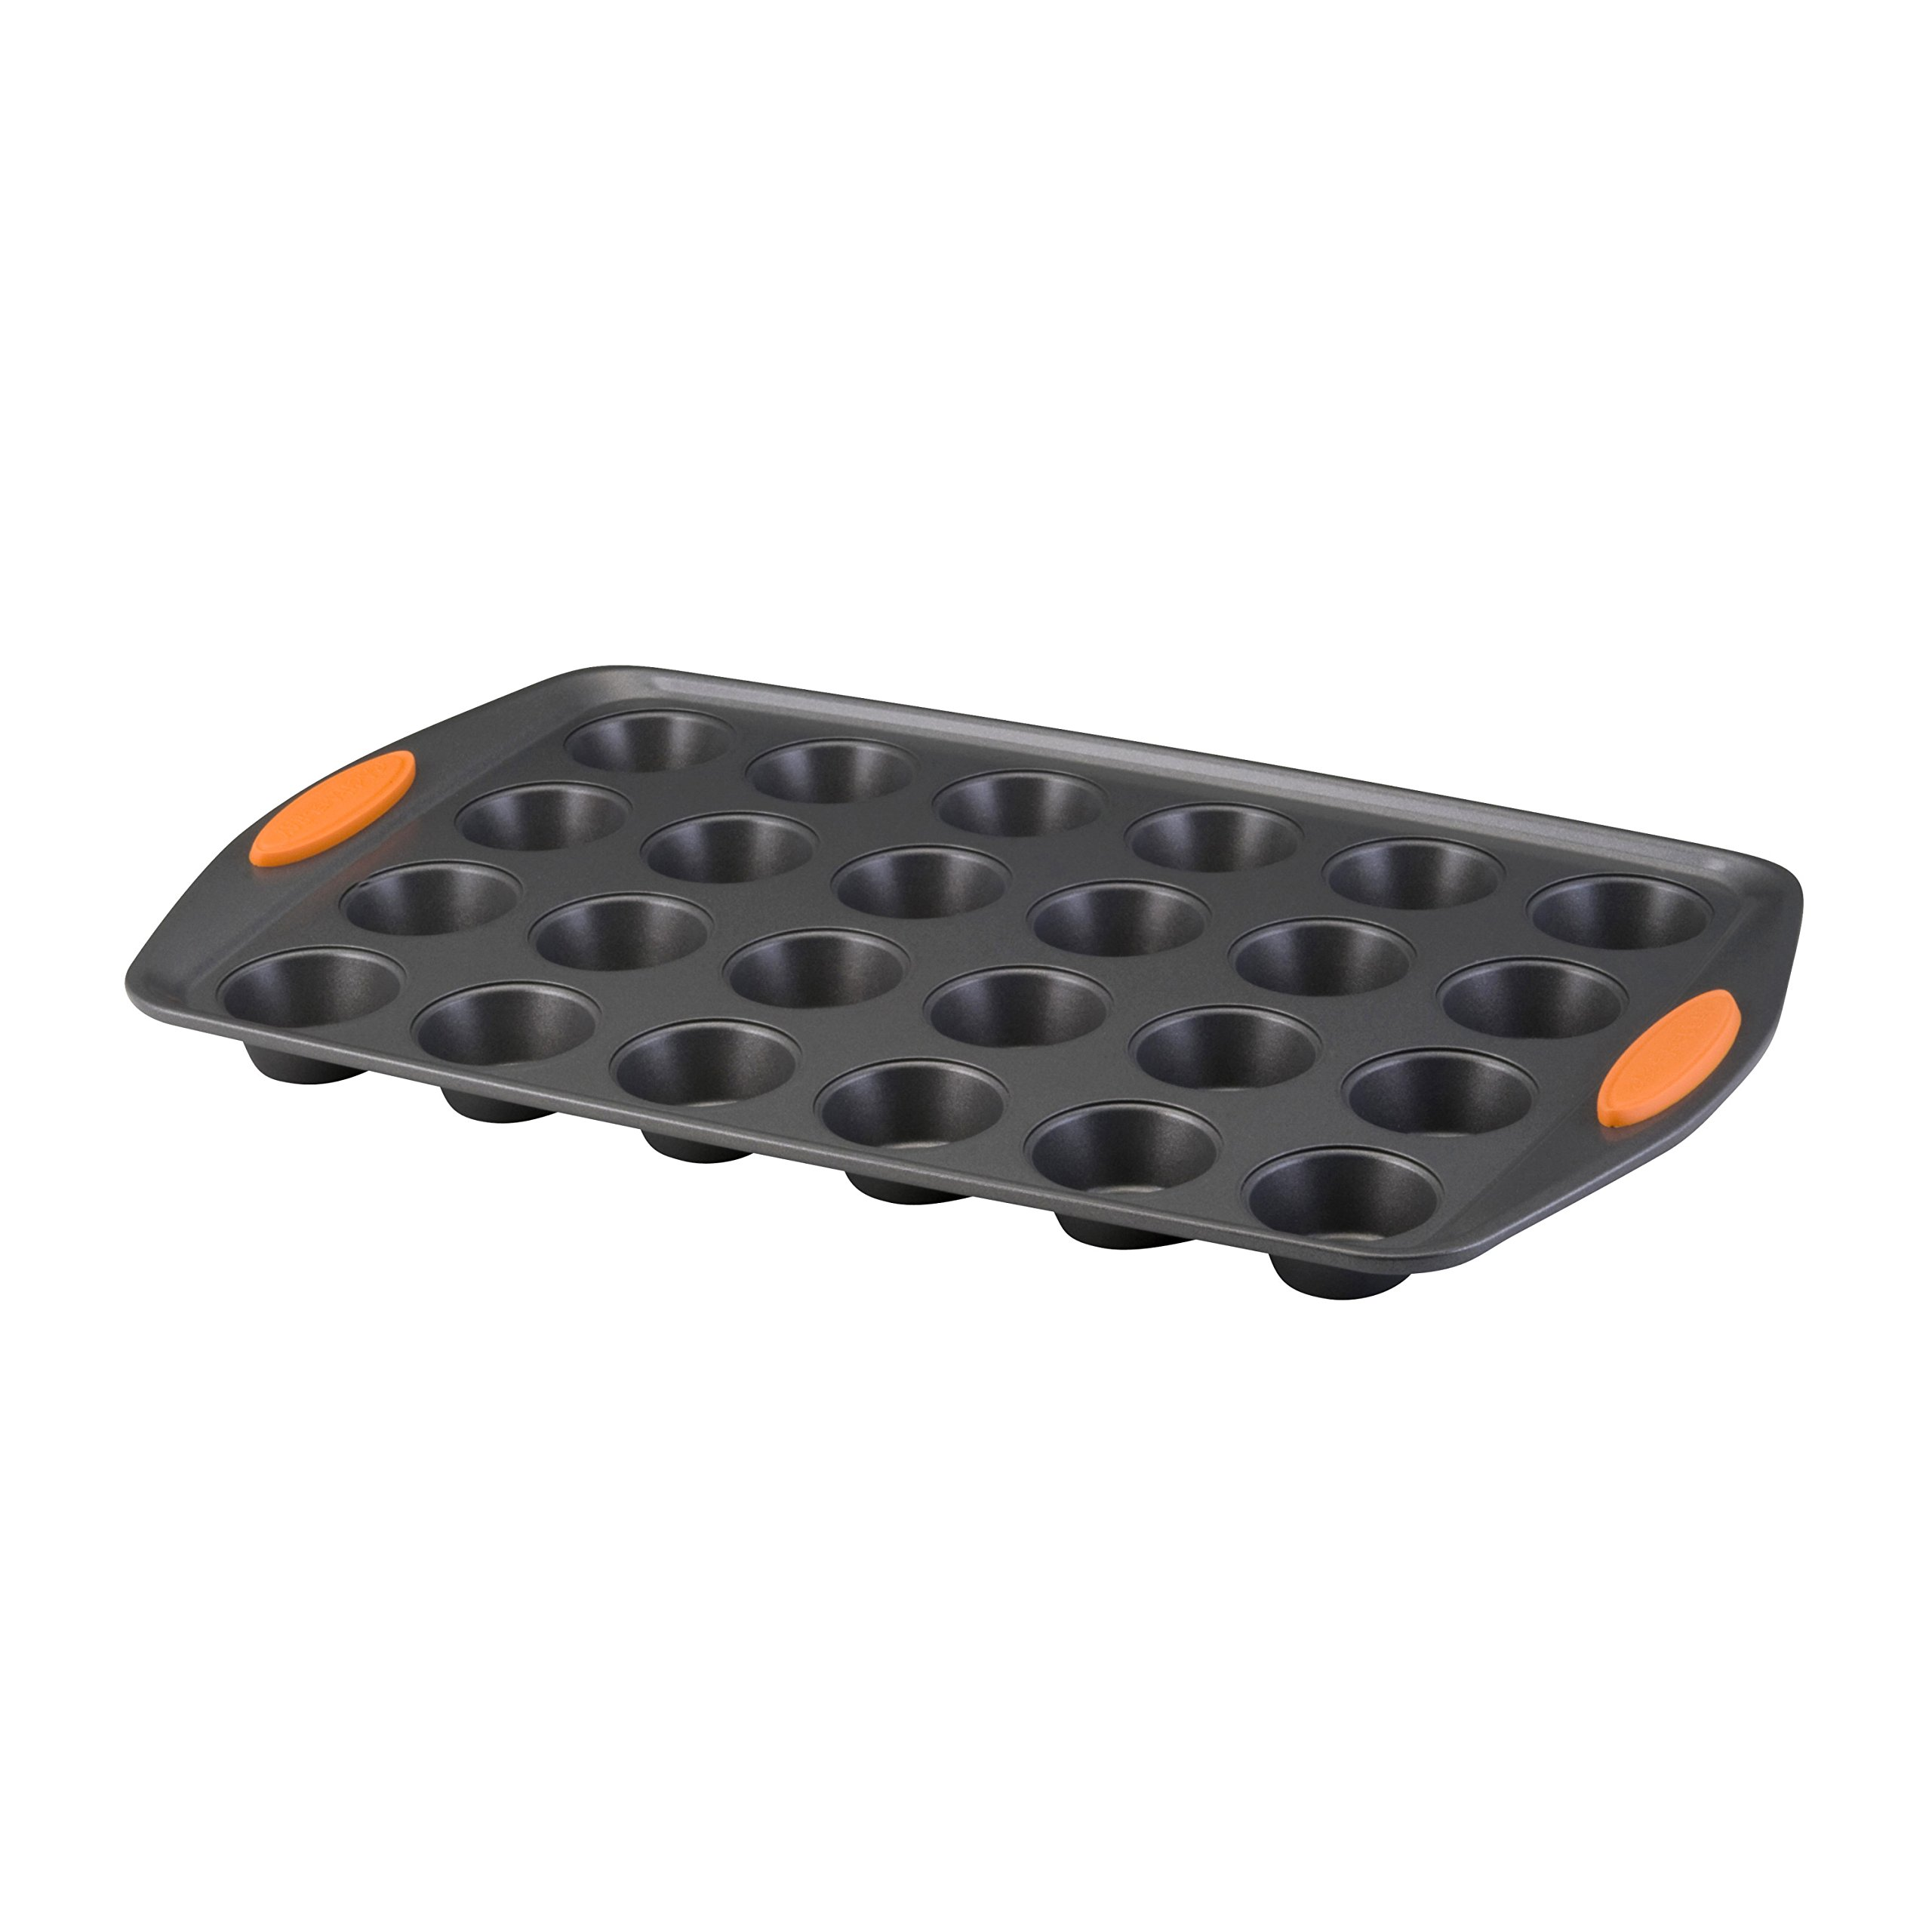 Rachael Ray Oven Lovin' Non-Stick 24-Cup Mini Muffin Pan, Orange by Rachael Ray